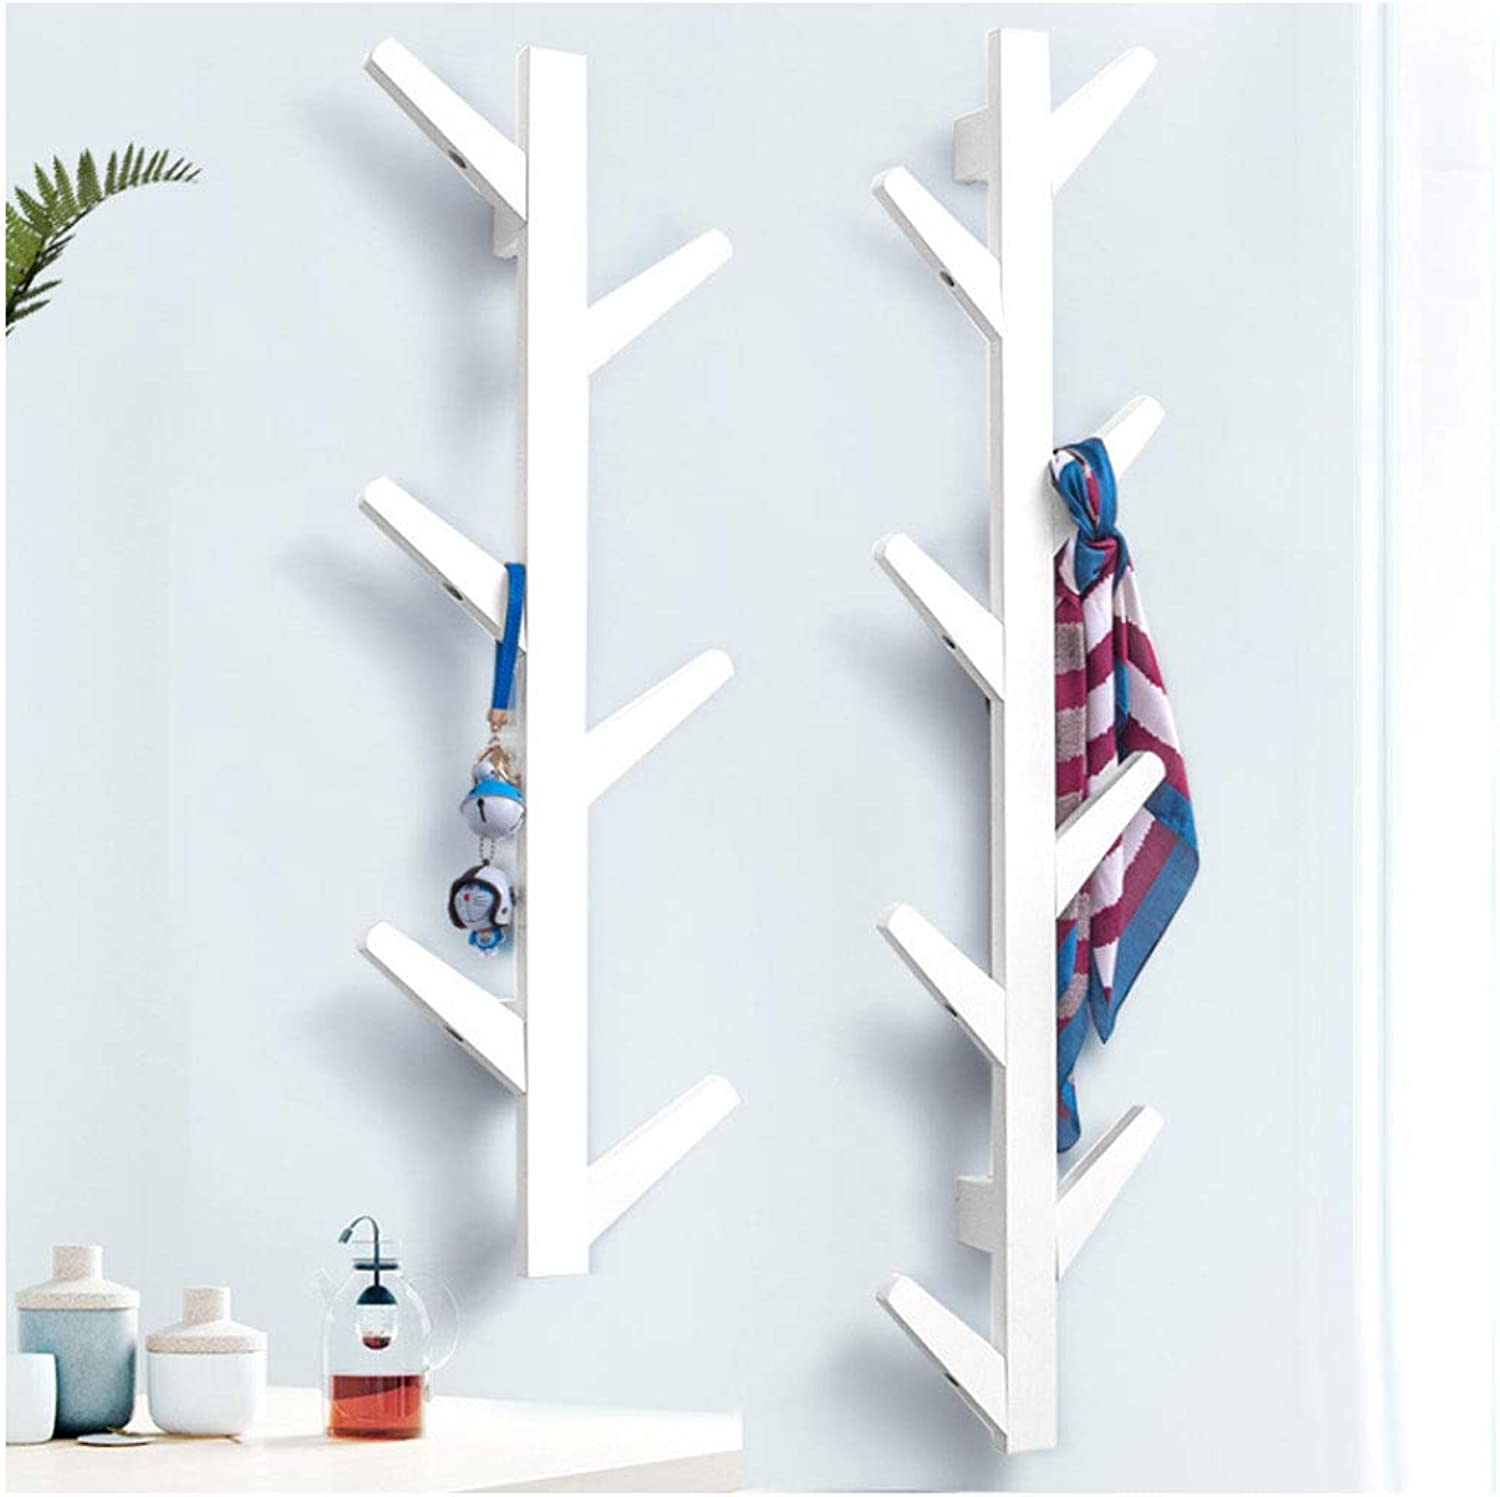 Creative Branch Wall Hanging Coat Rack Hall Hall Bedroom Decoration Multifunctional Hanger (color   White, Size   78cm(6hook))